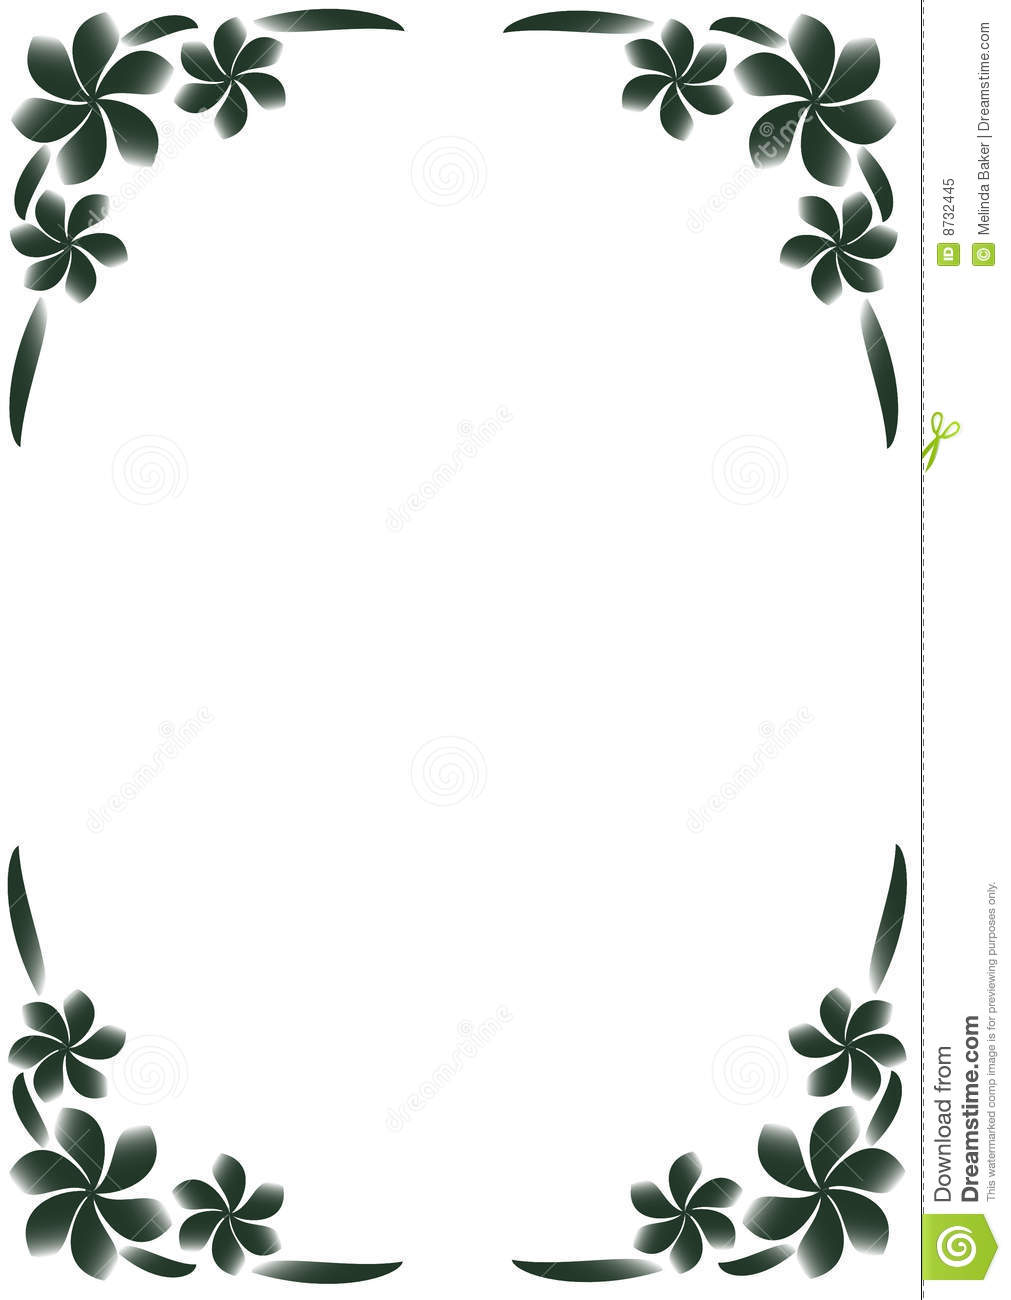 Black & White Floral Border Royalty Free Stock Photo ...